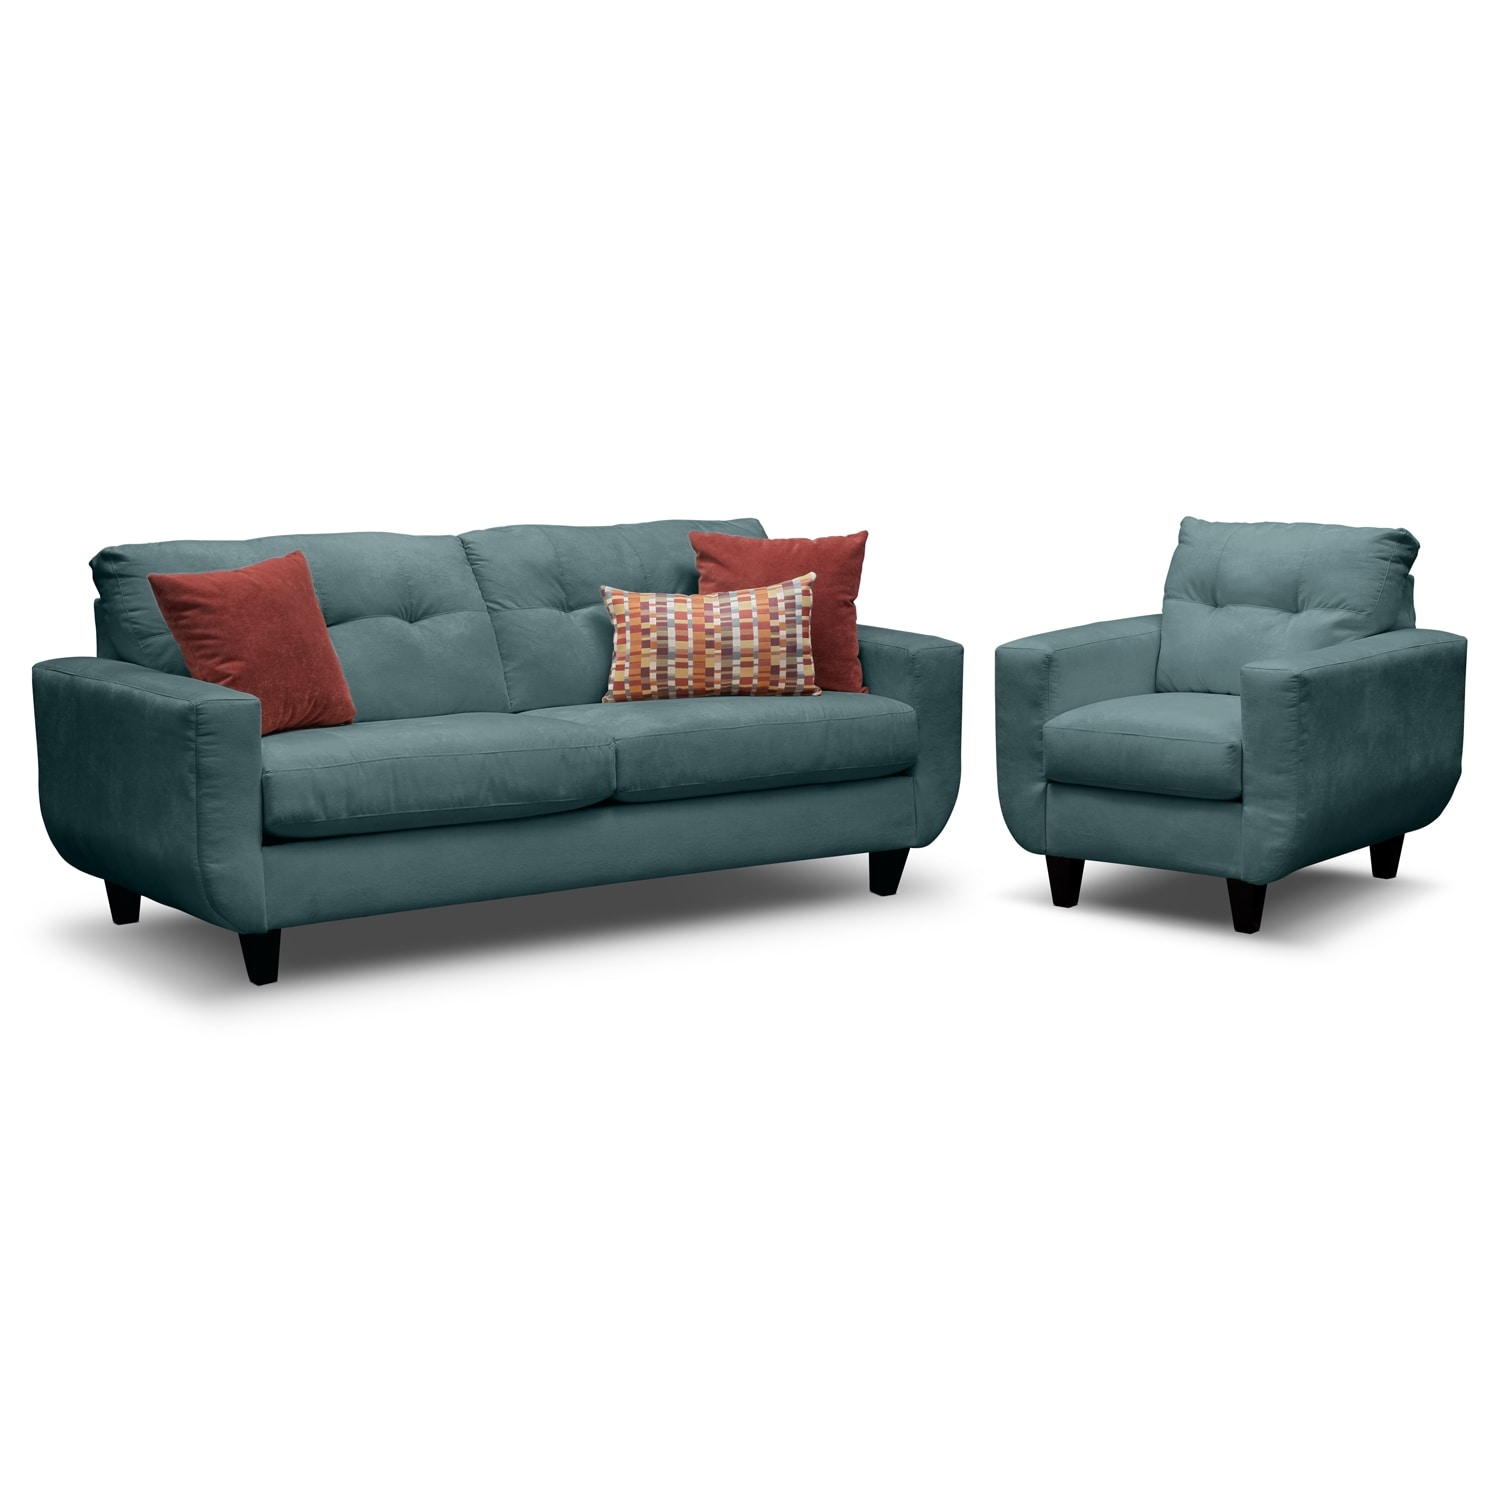 Living Room Furniture - West Village Sofa and Chair Set - Blue